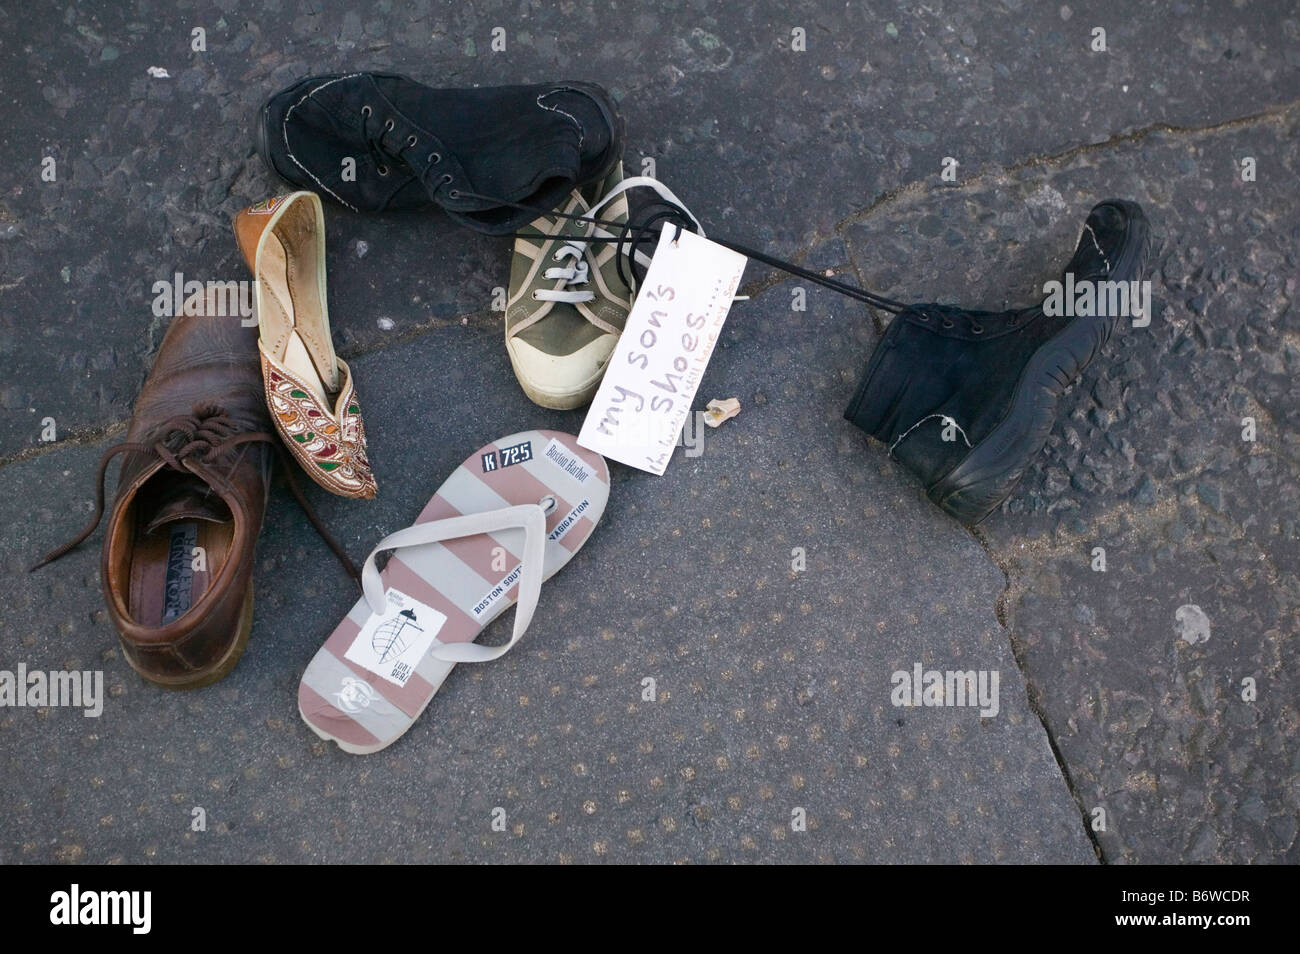 Shoes left with messages at anti-Israeli Demonstration outside Downing Street after attacks on Gaza Strip. - Stock Image